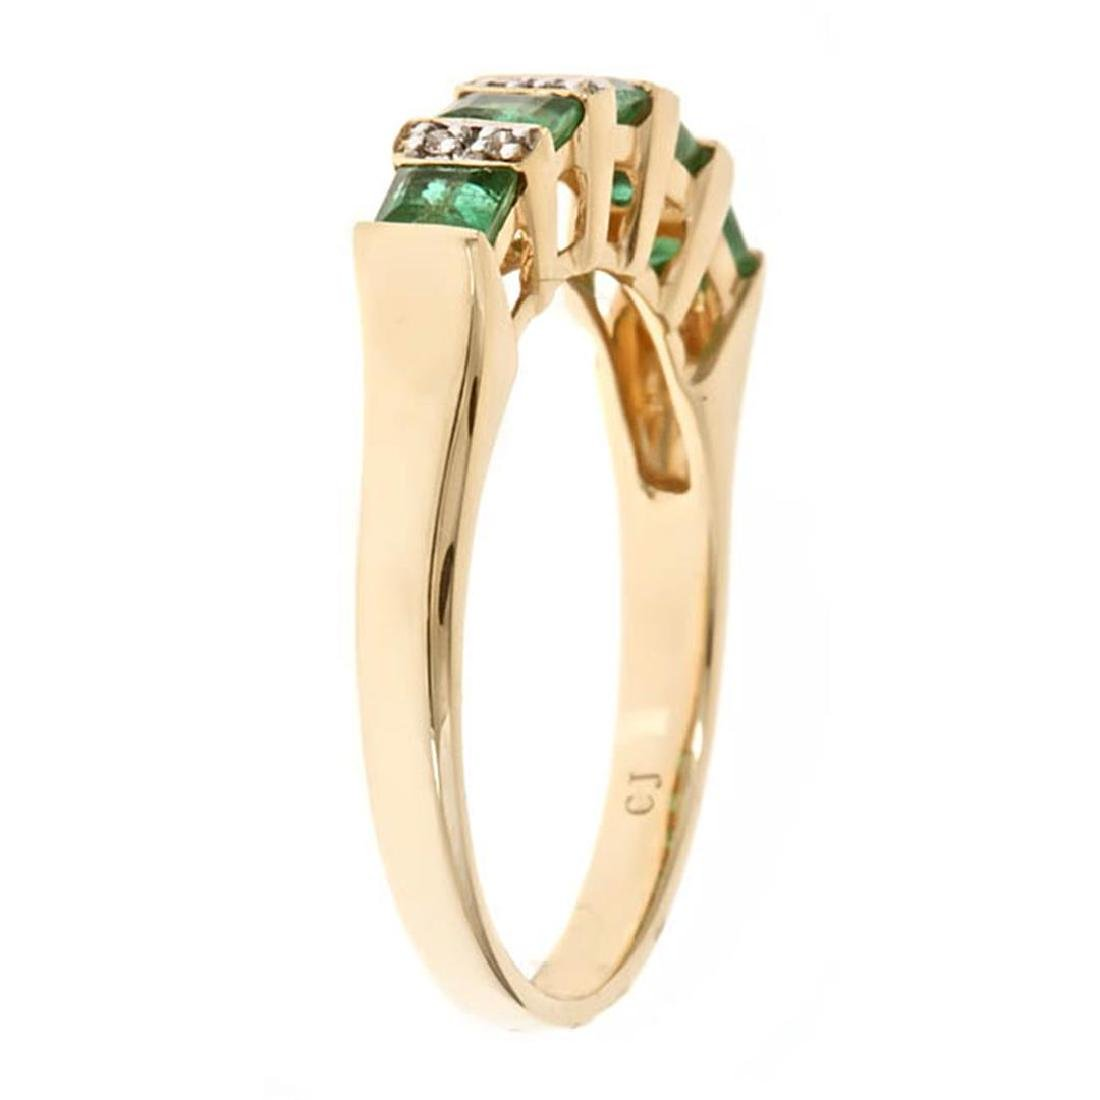 0.72 ctw Emerald and Diamond Ring - 14KT Yellow Gold - 2